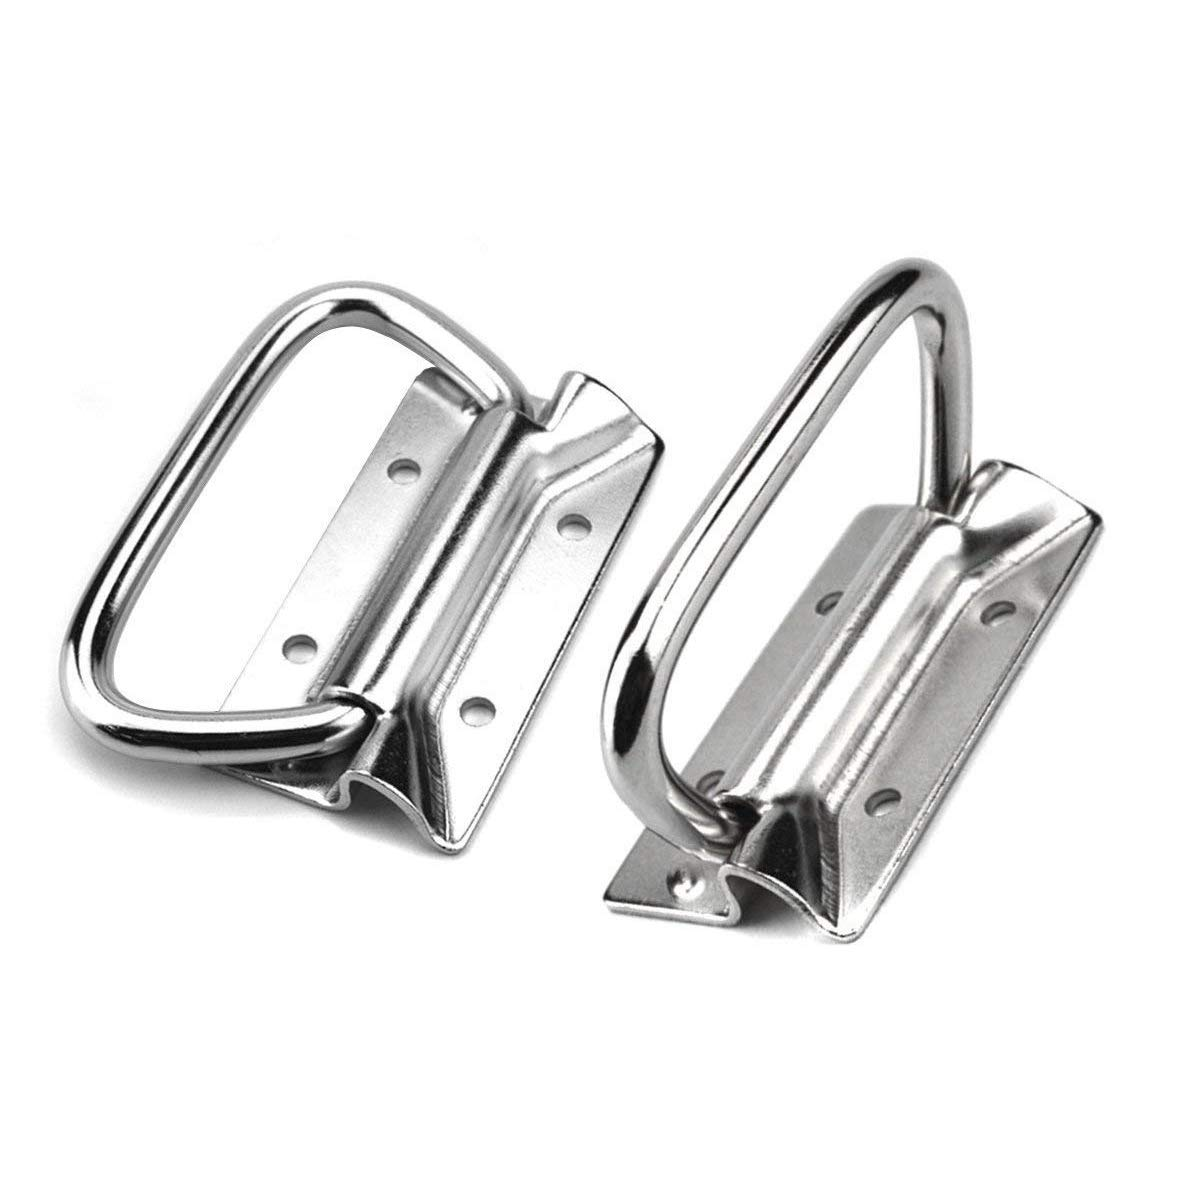 Stainless Steel Pull Handles for Toolbox Lifting Door Chest 4 Inch (2pcs)